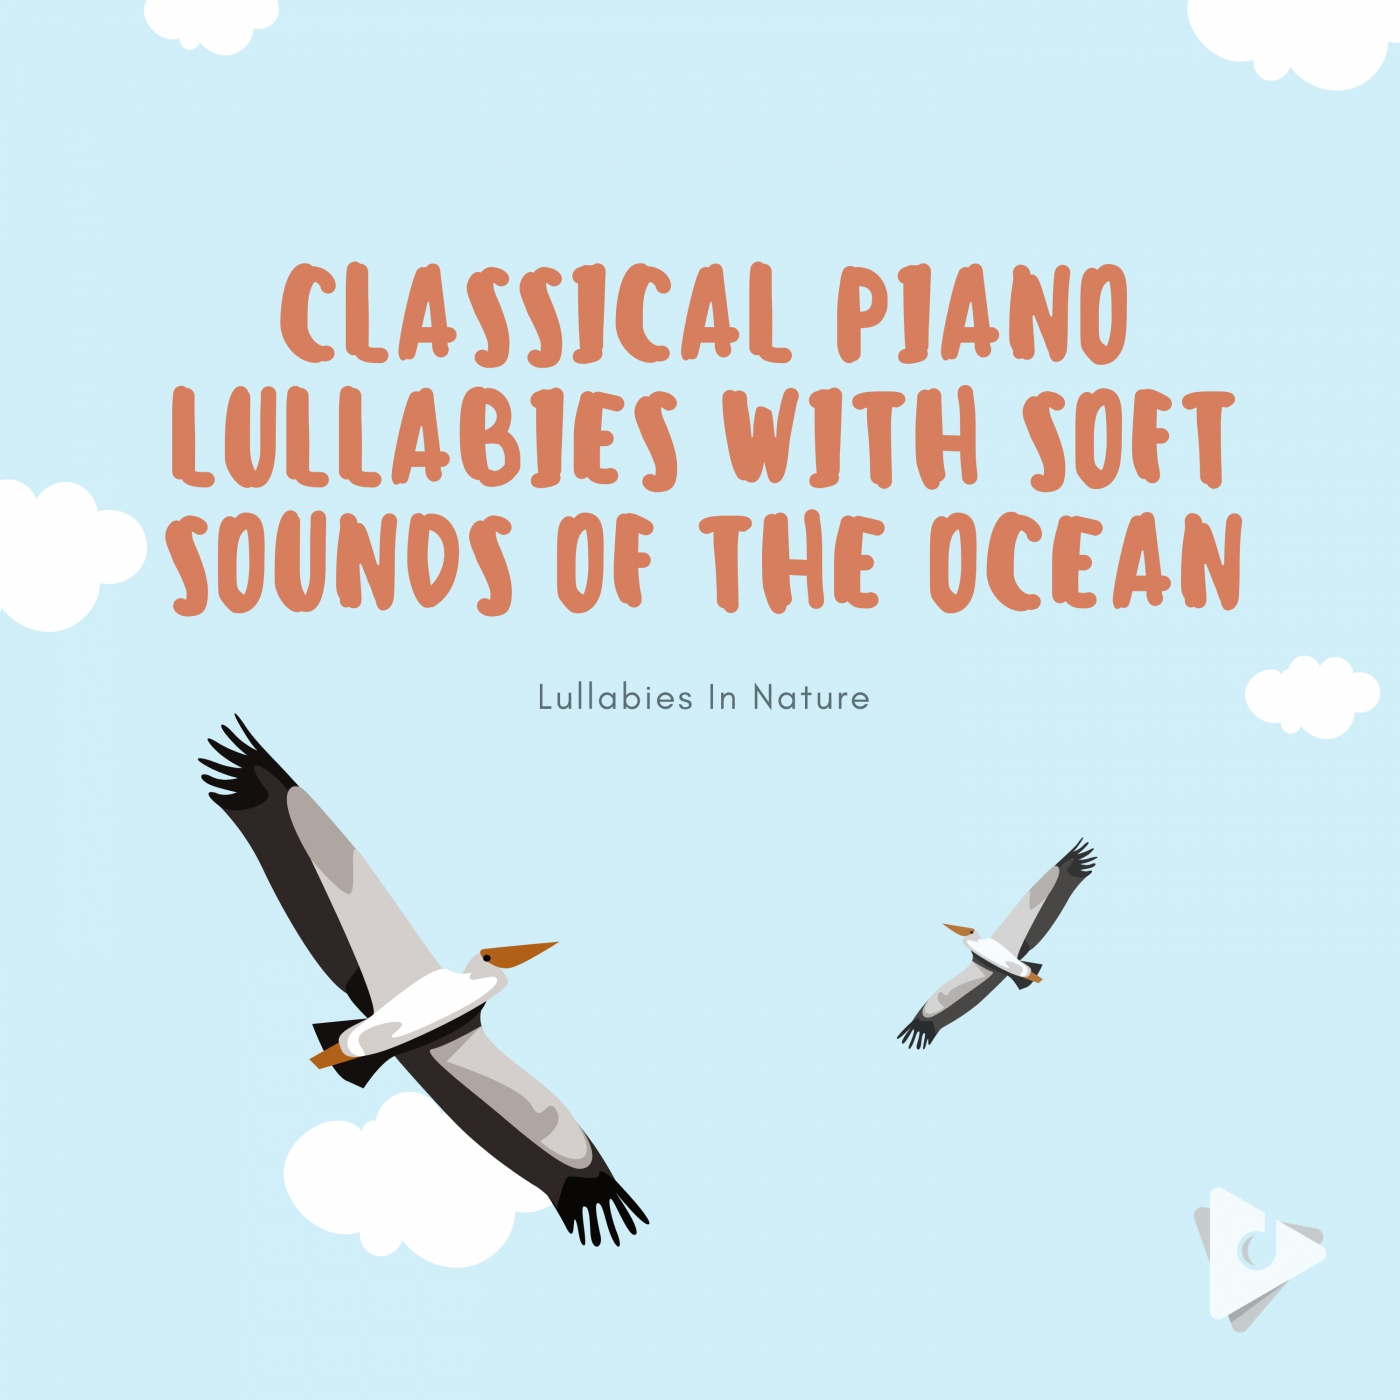 Classical Piano Lullabies with Soft Sounds of the Ocean